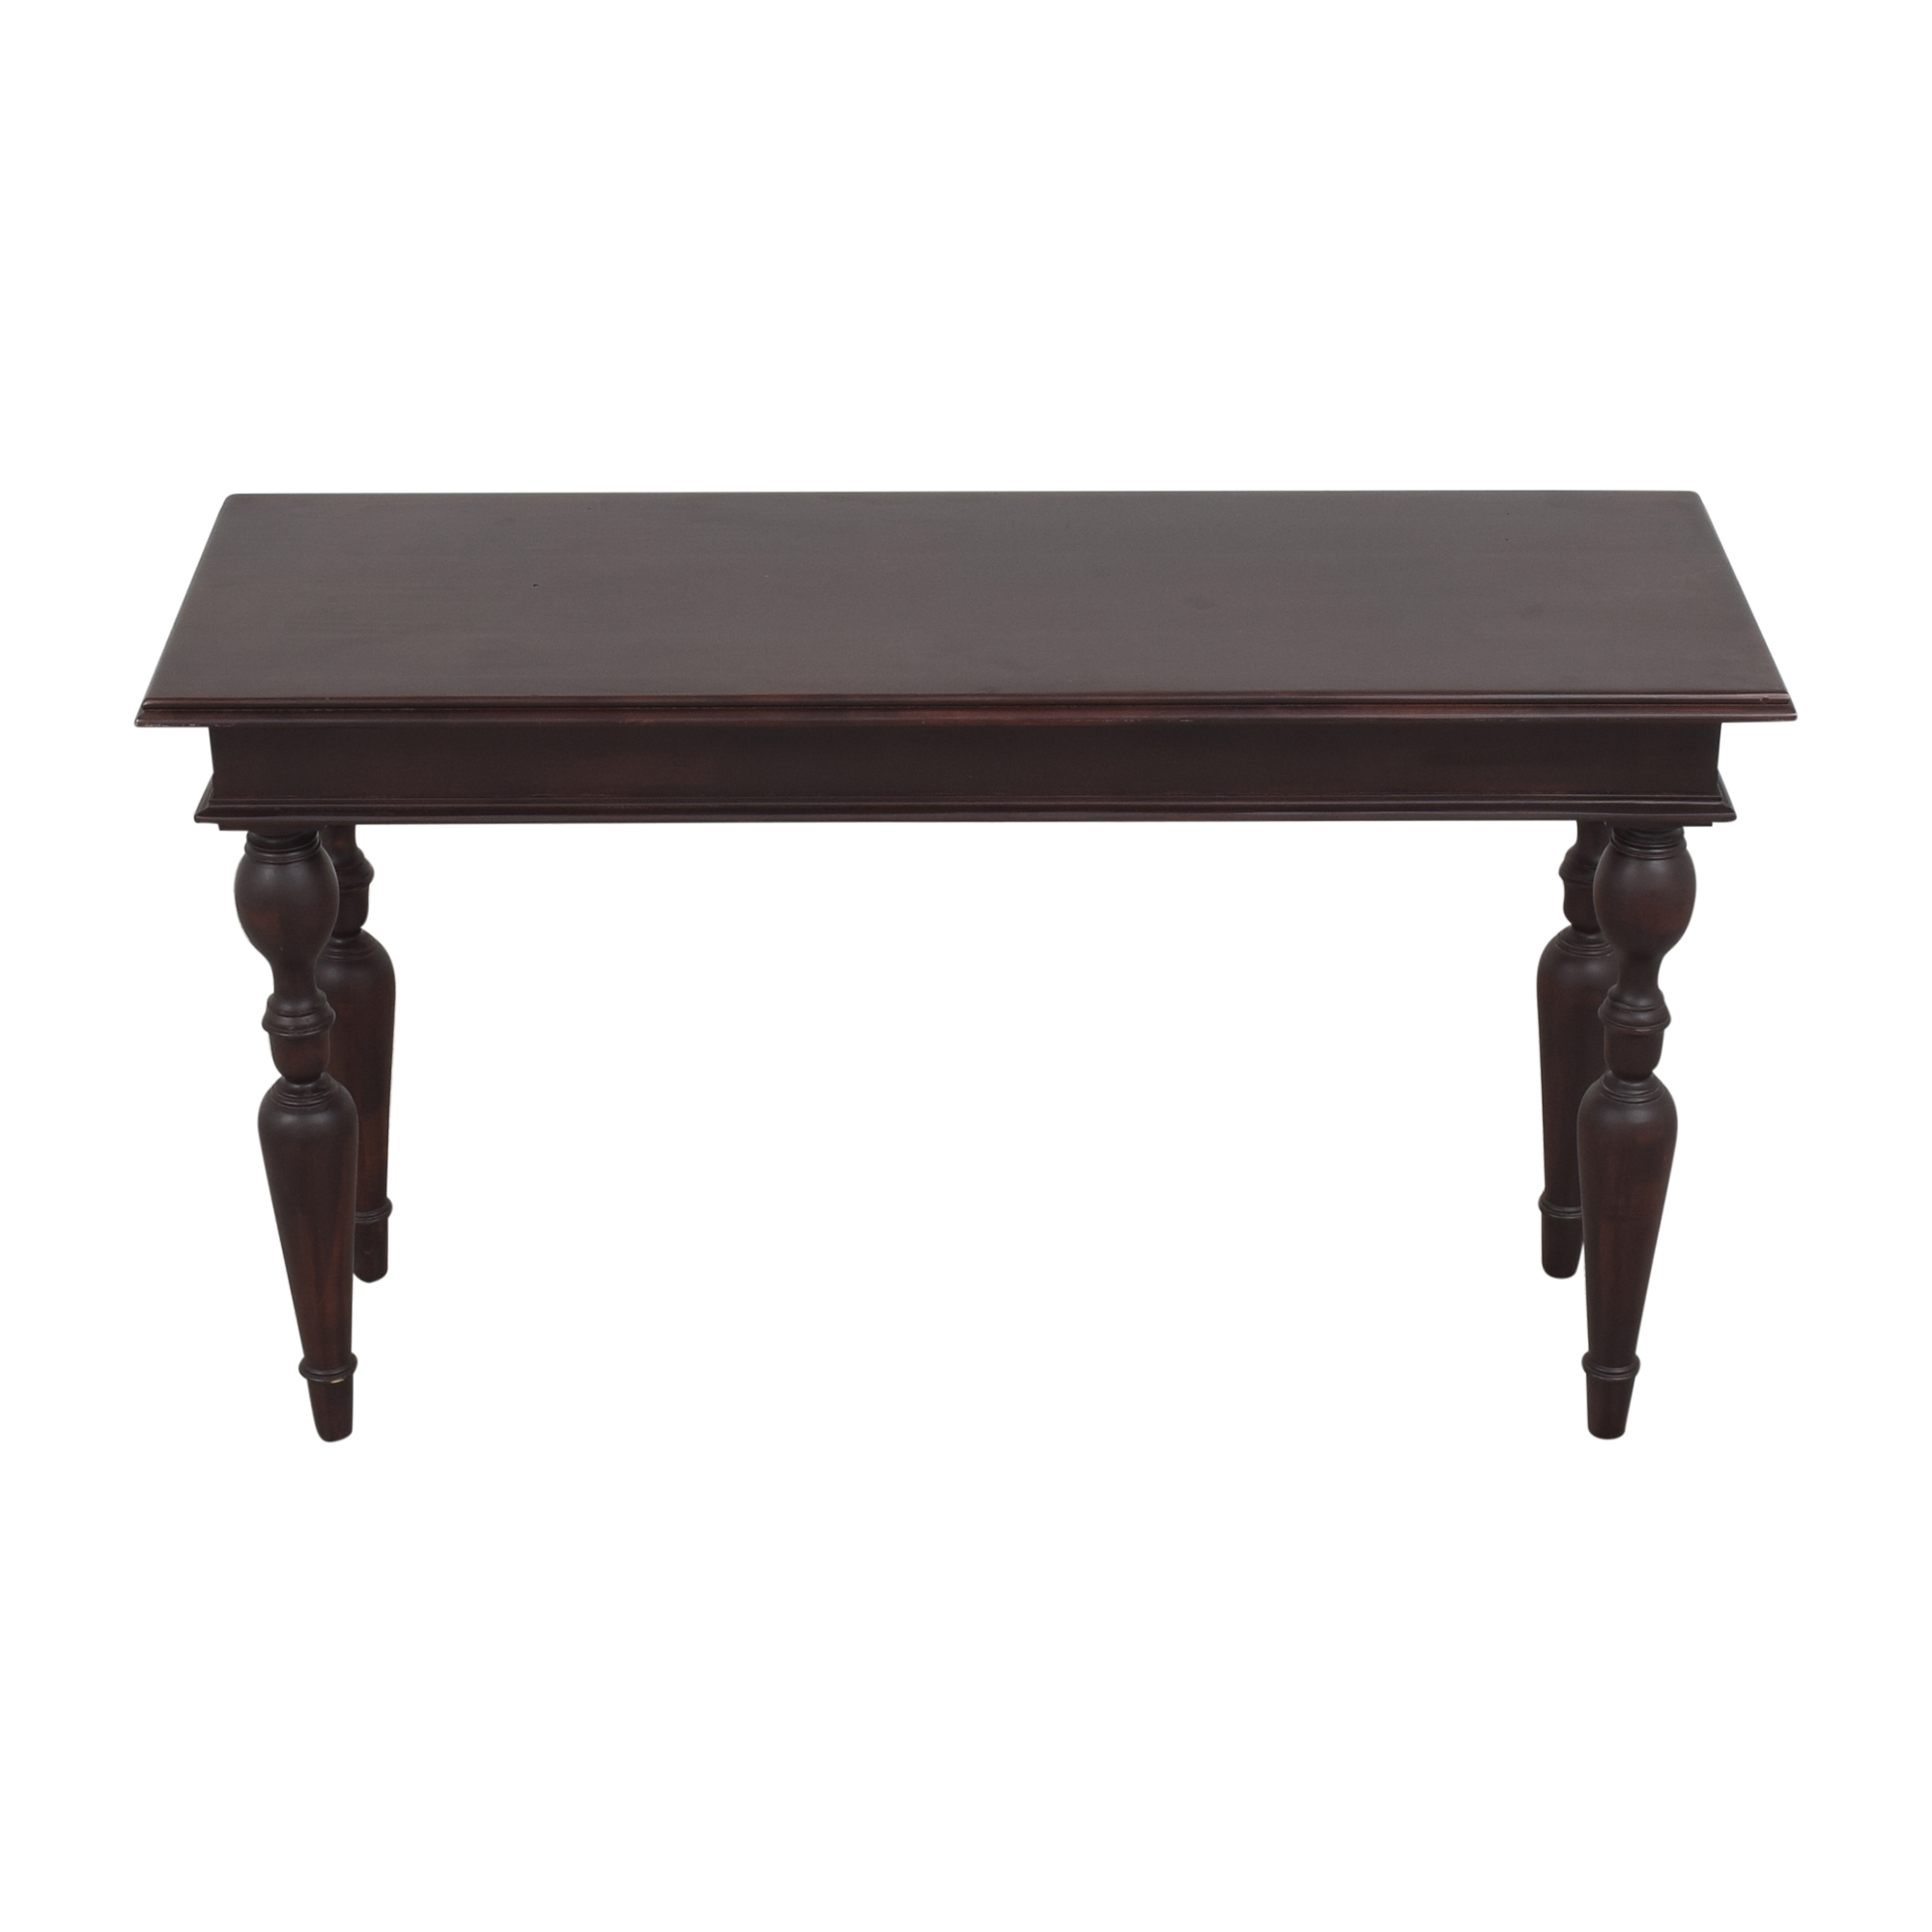 Lillian August Turned Leg Console Table Lillian August